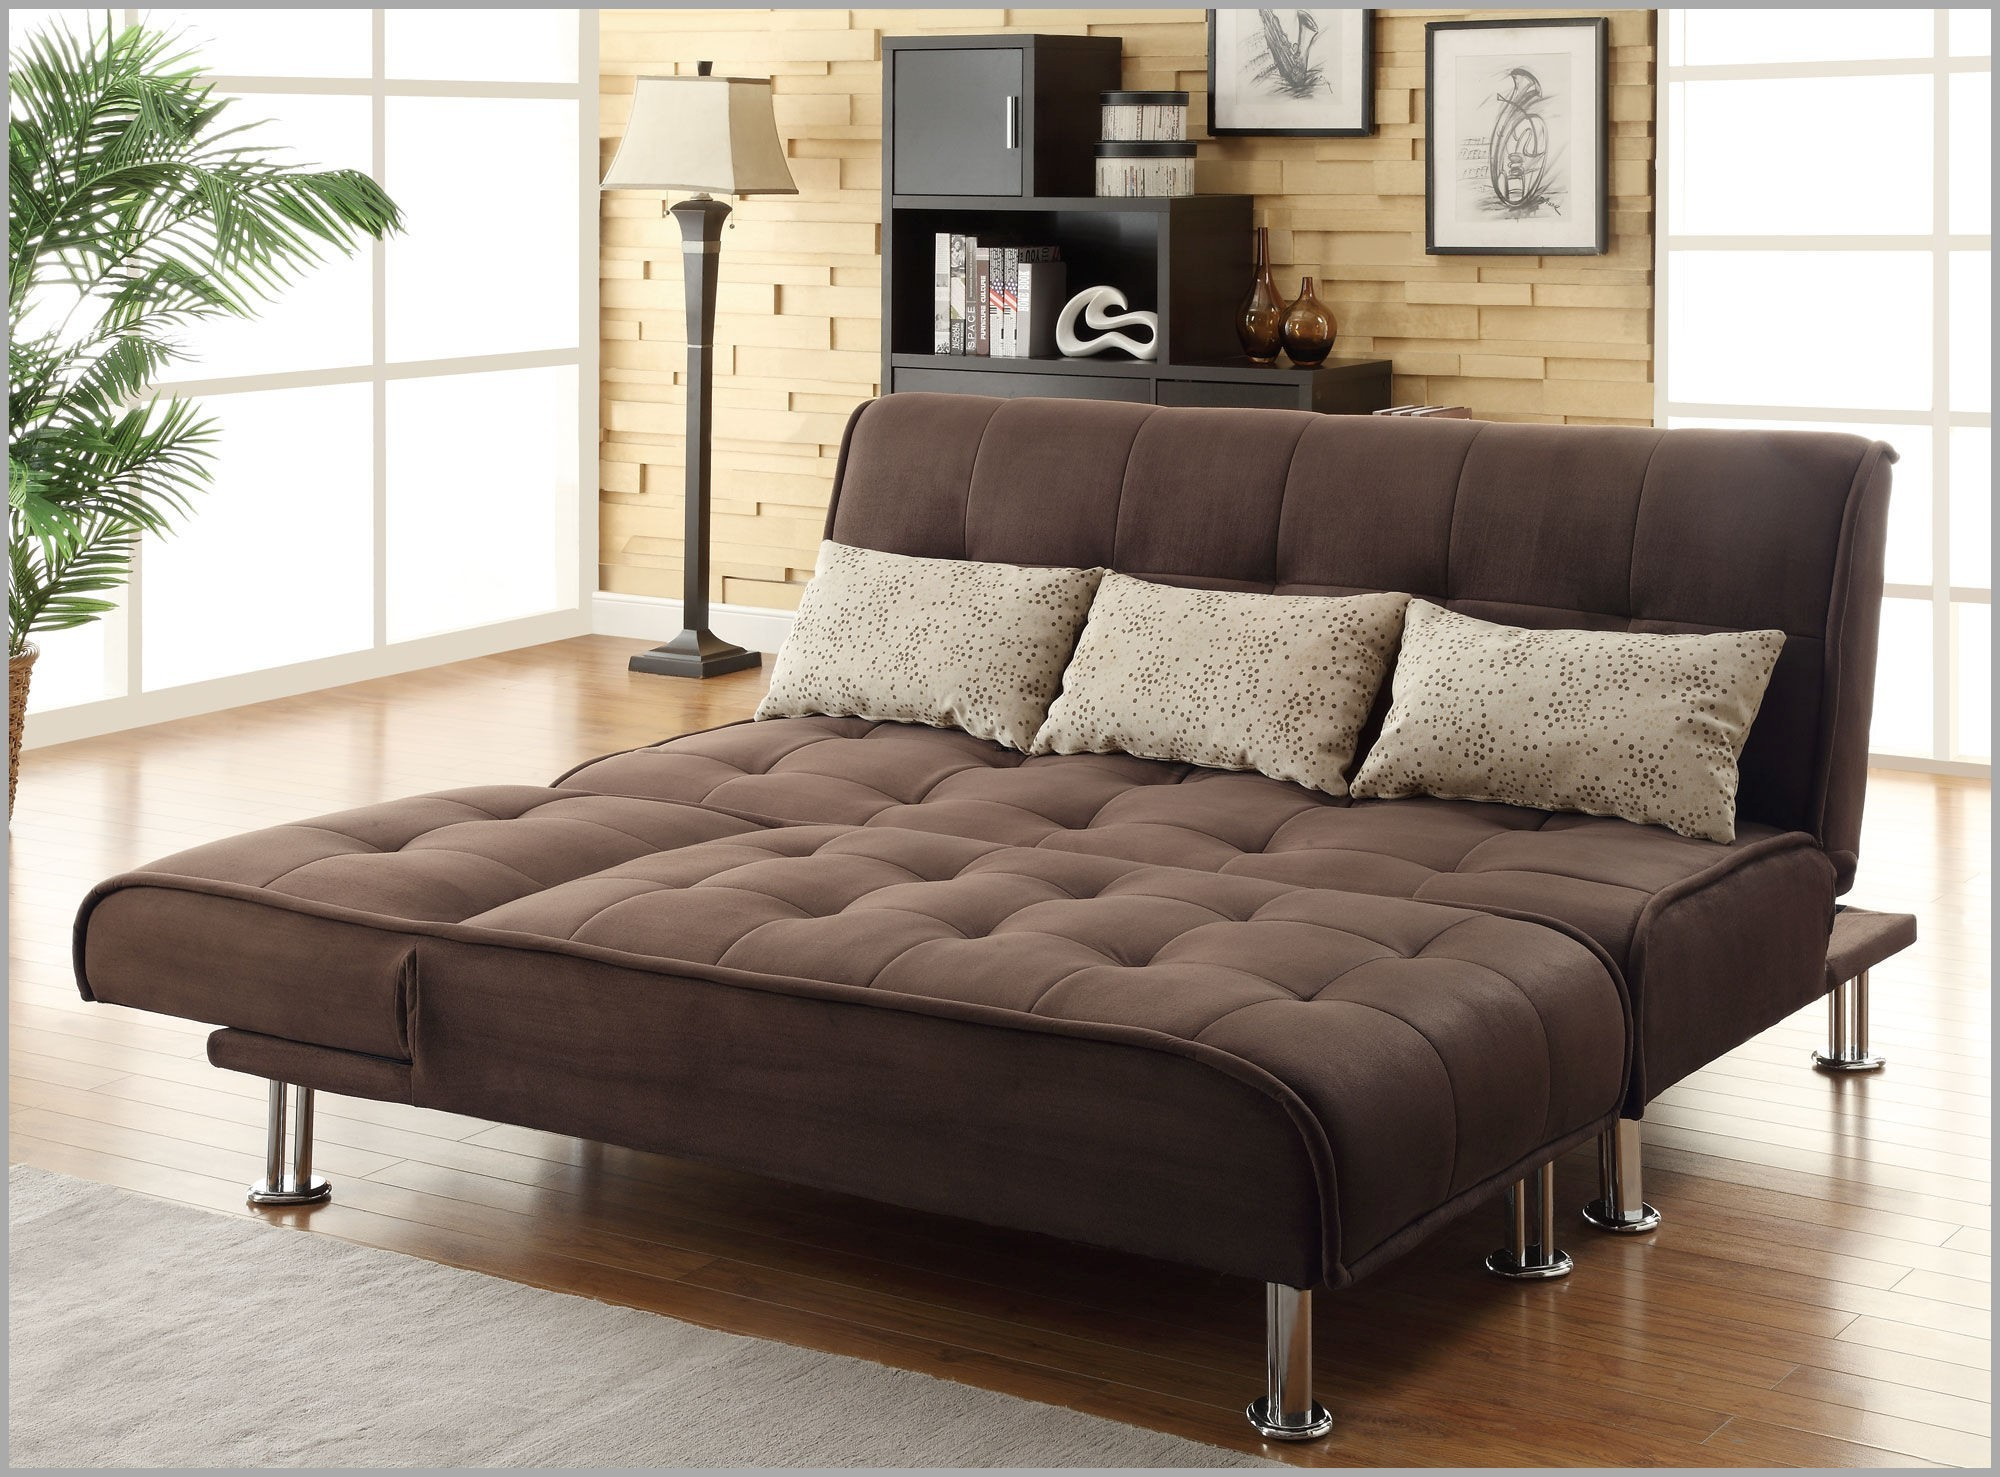 Excellent King Size Sofa Bed Model